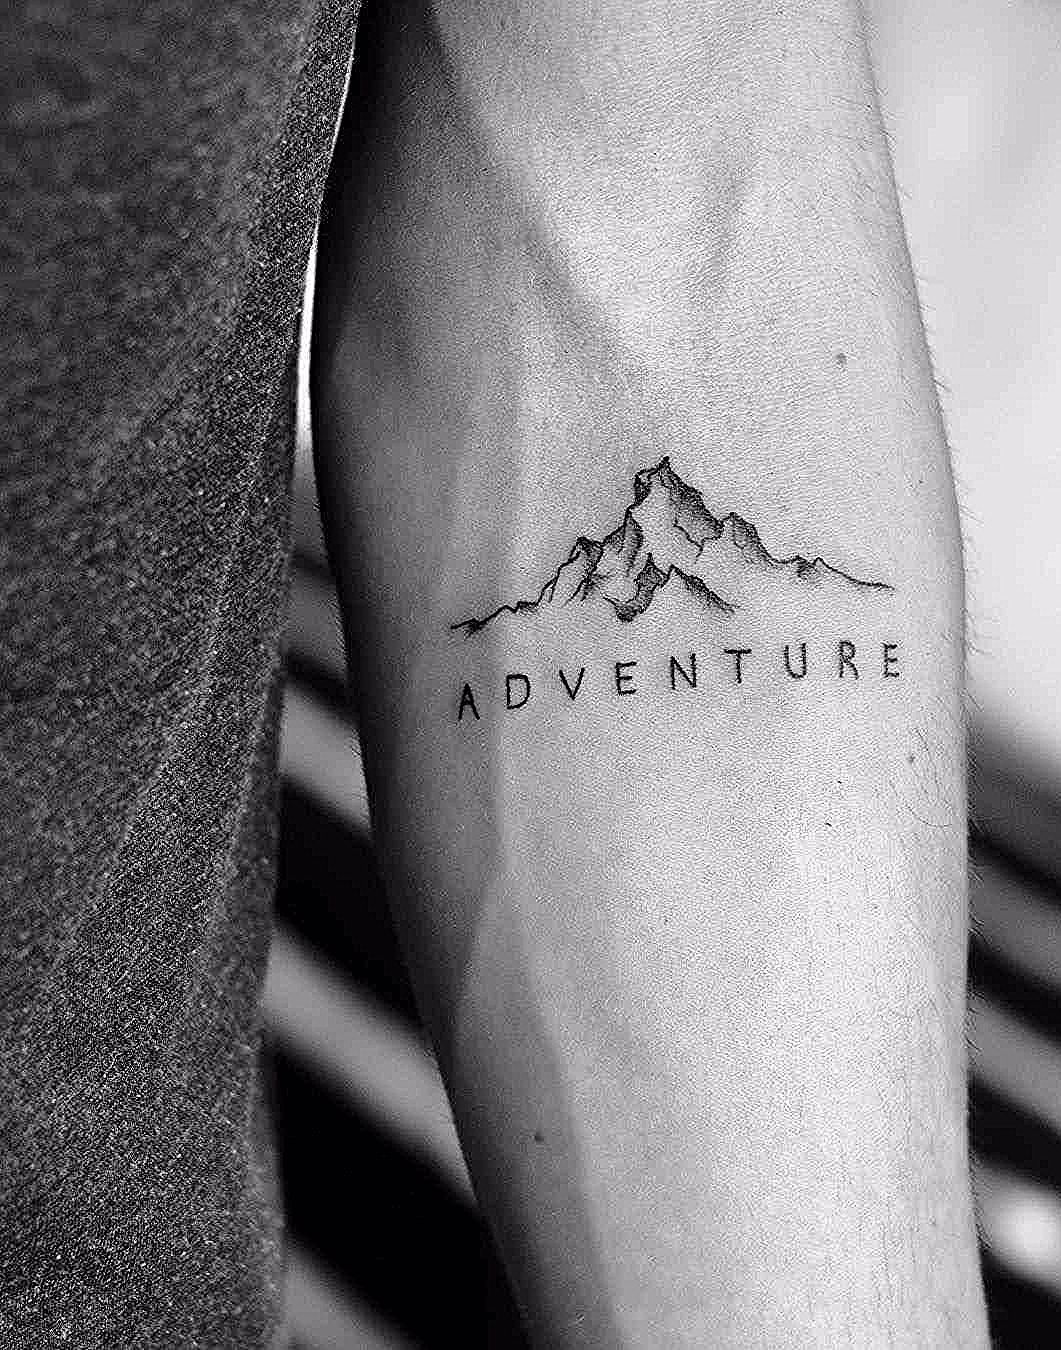 Petit Tatouage Homme Contours Montagne Mot Aventure Avant Bras Inspirational Tattoos Tattoos For Guys Small Chest Tattoos